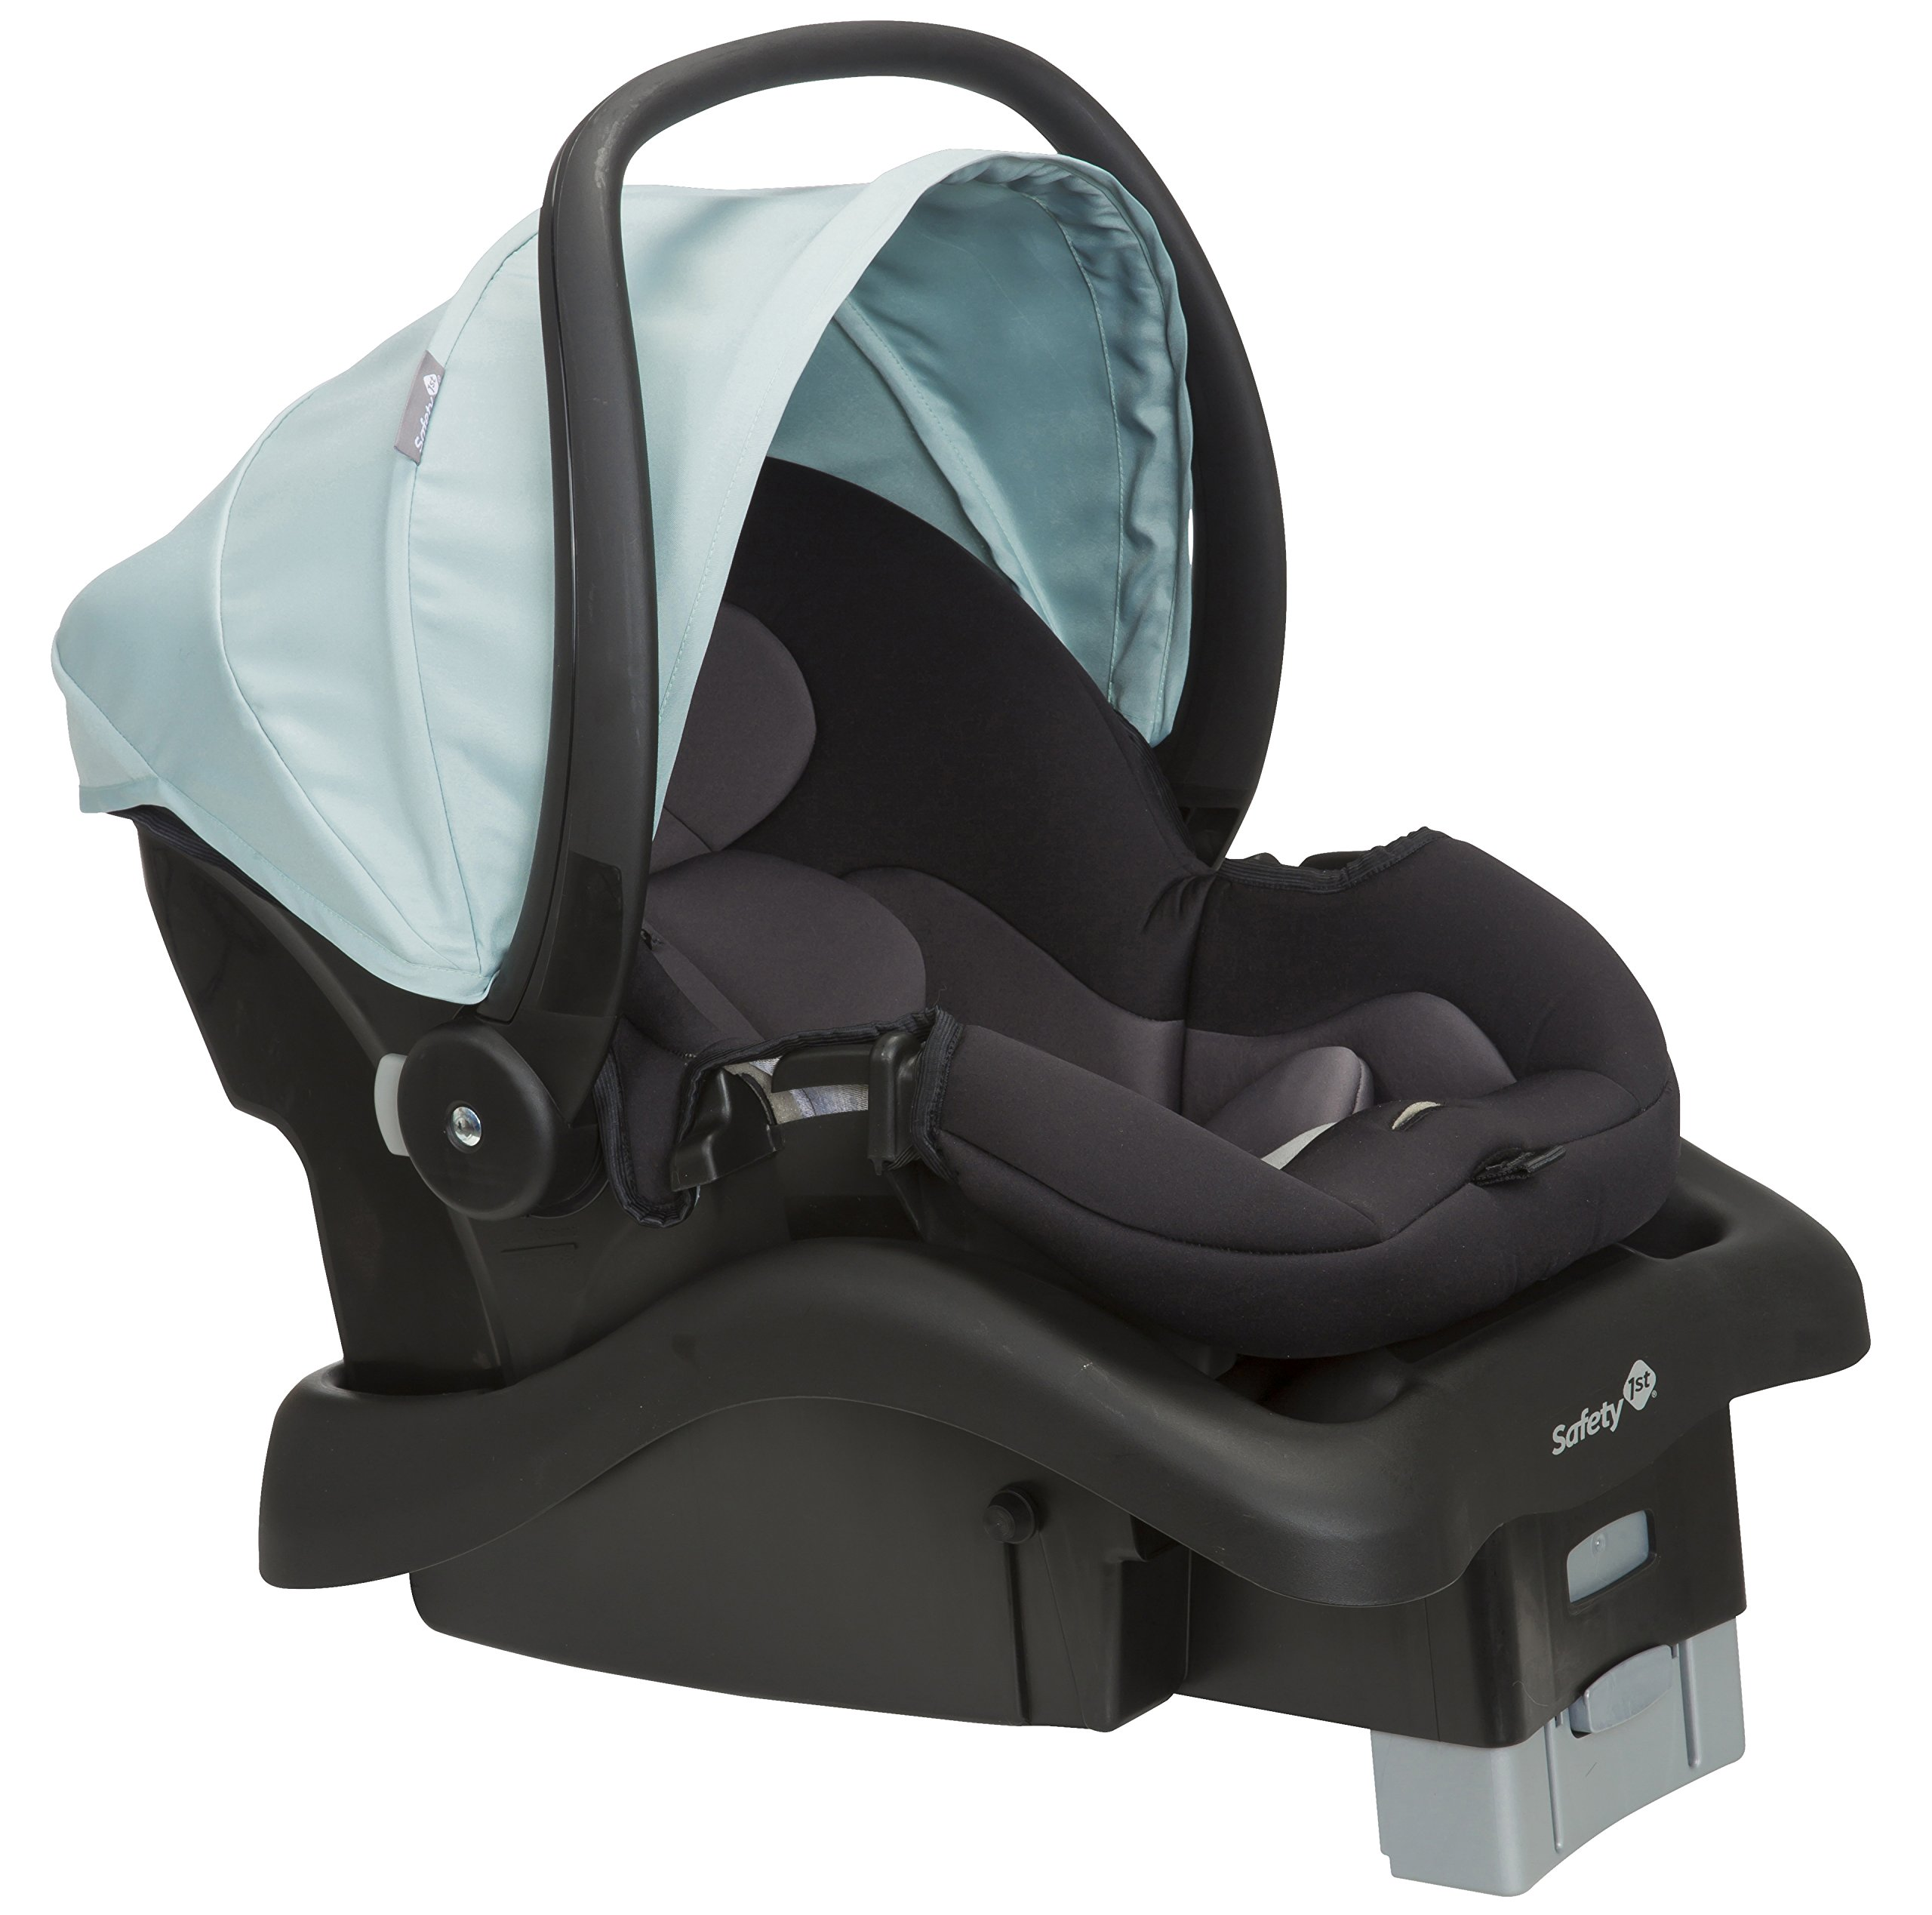 Safety 1st onBoard 35 LT Infant Car Seat, Juniper Pop by Safety 1st (Image #6)